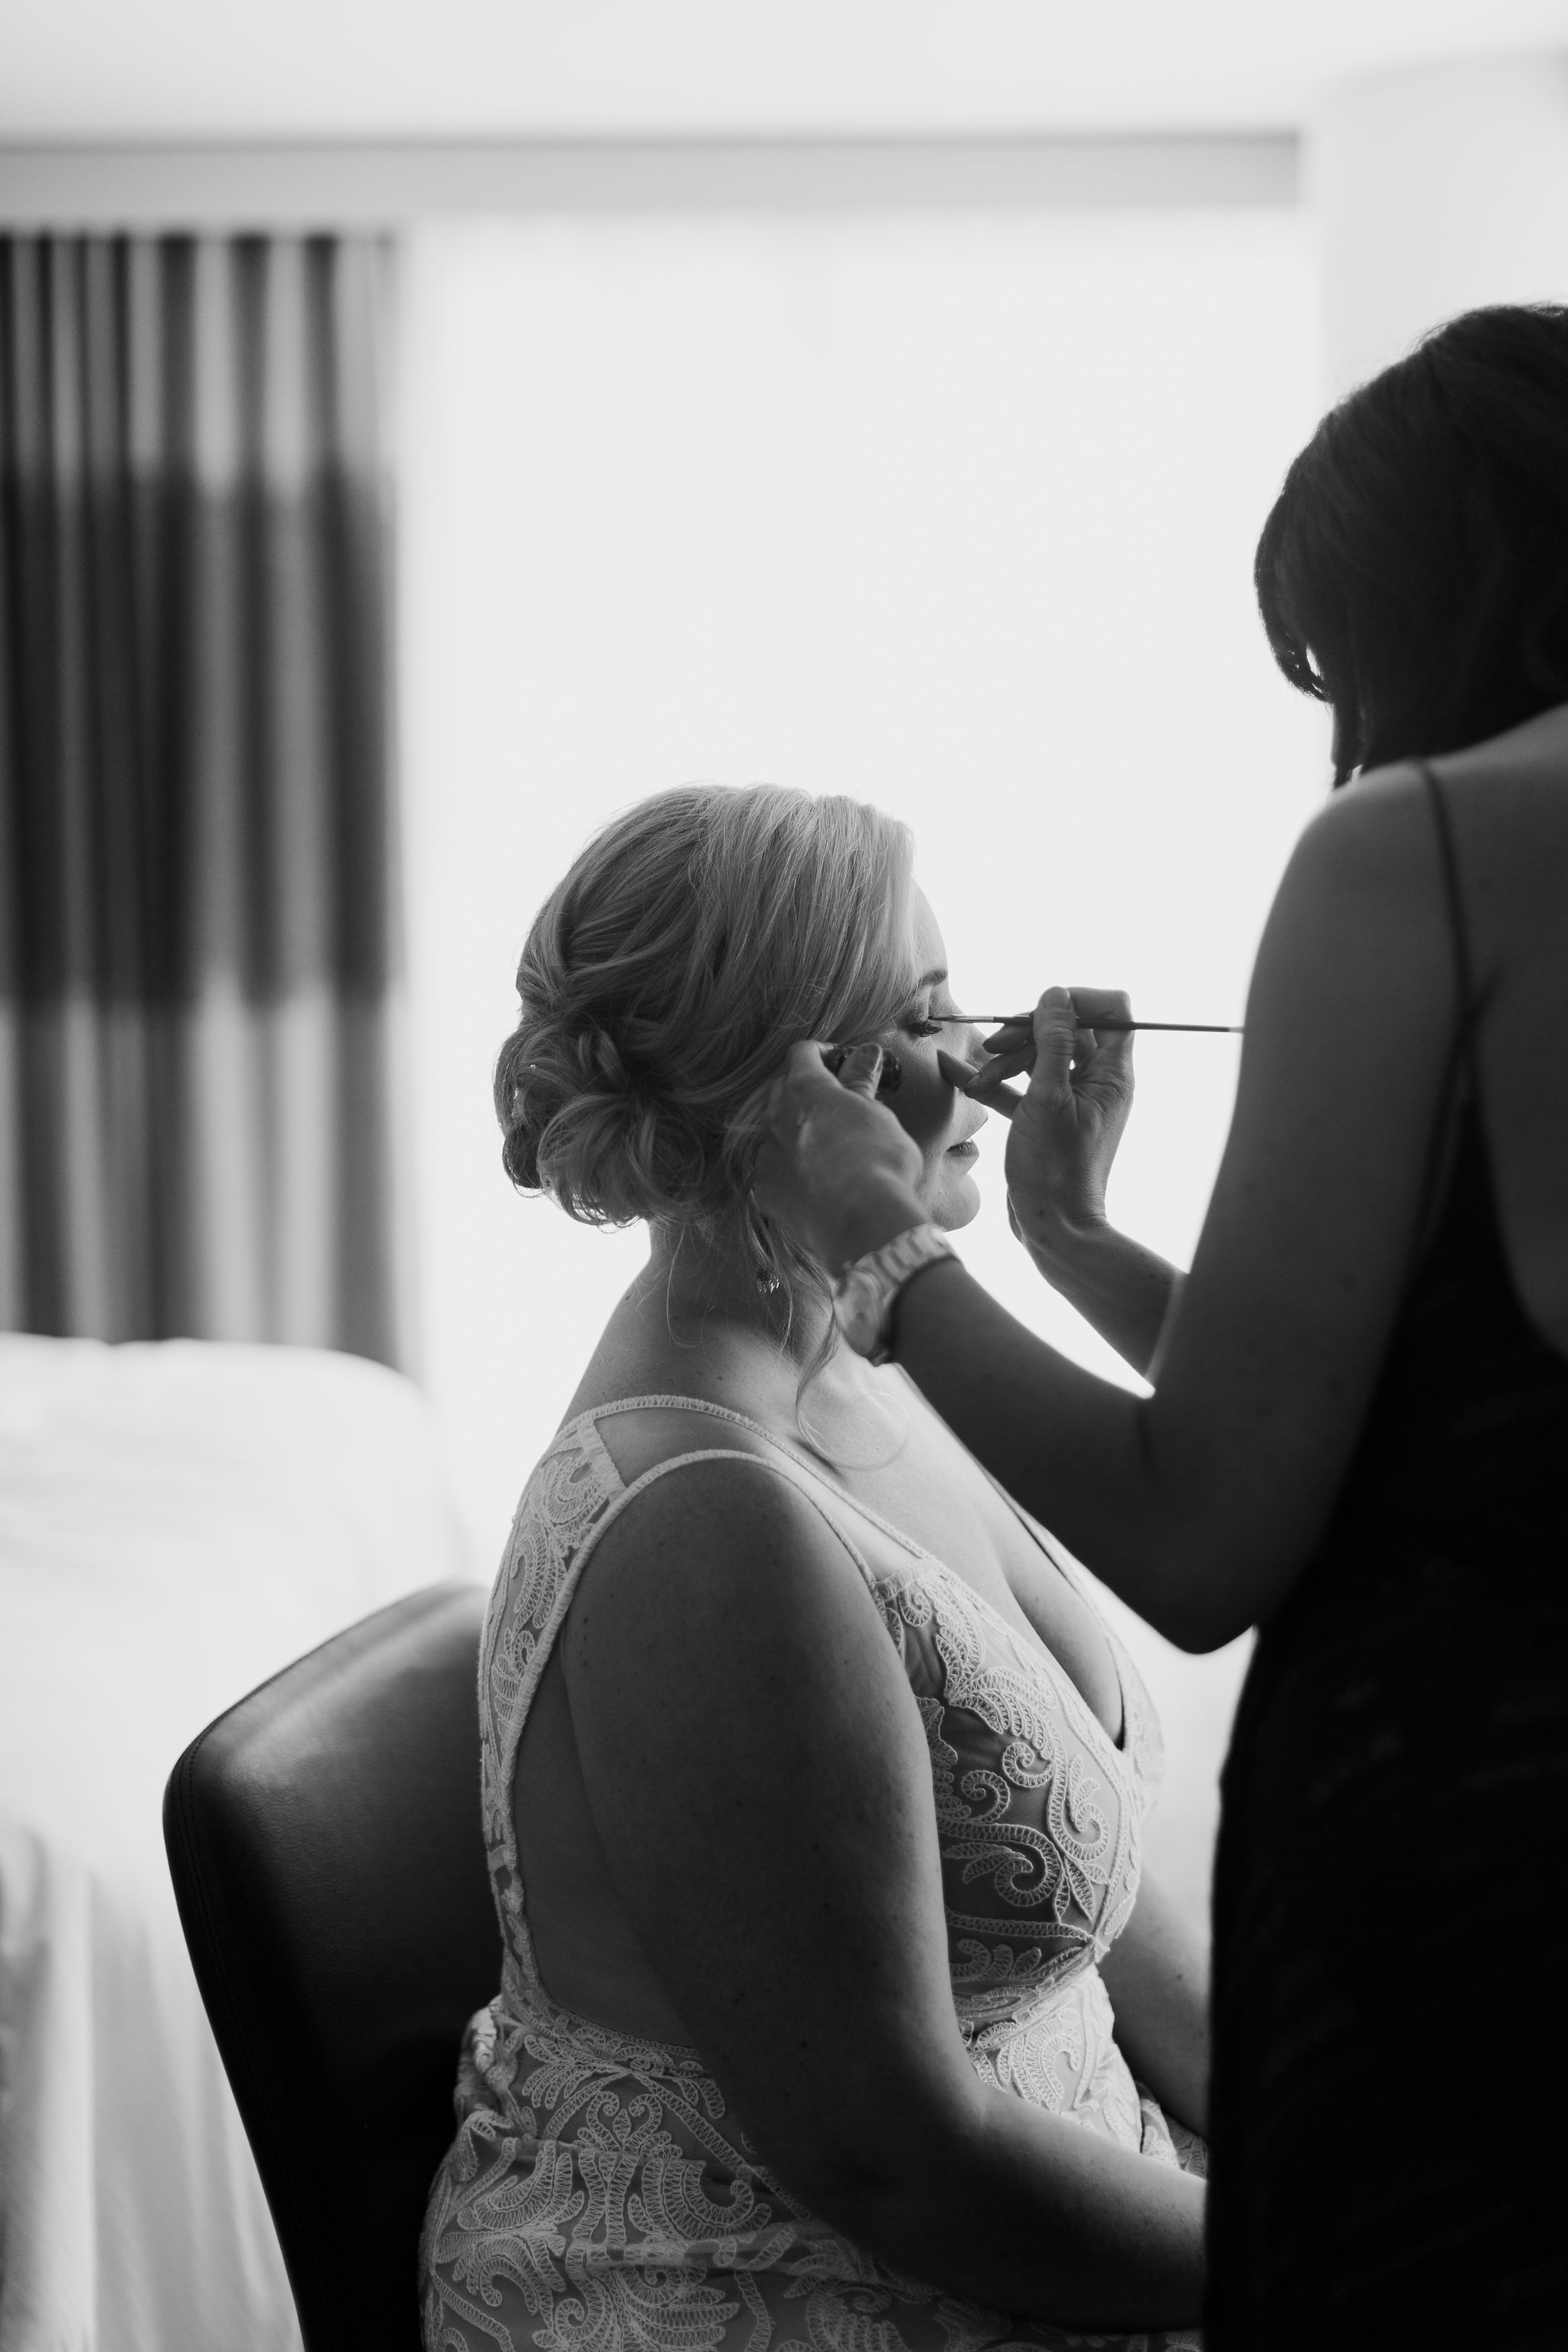 Paige-Newton-Intimate-Wedding-Photographer-Contigo-Wedding-Austin-Texas0006.jpg